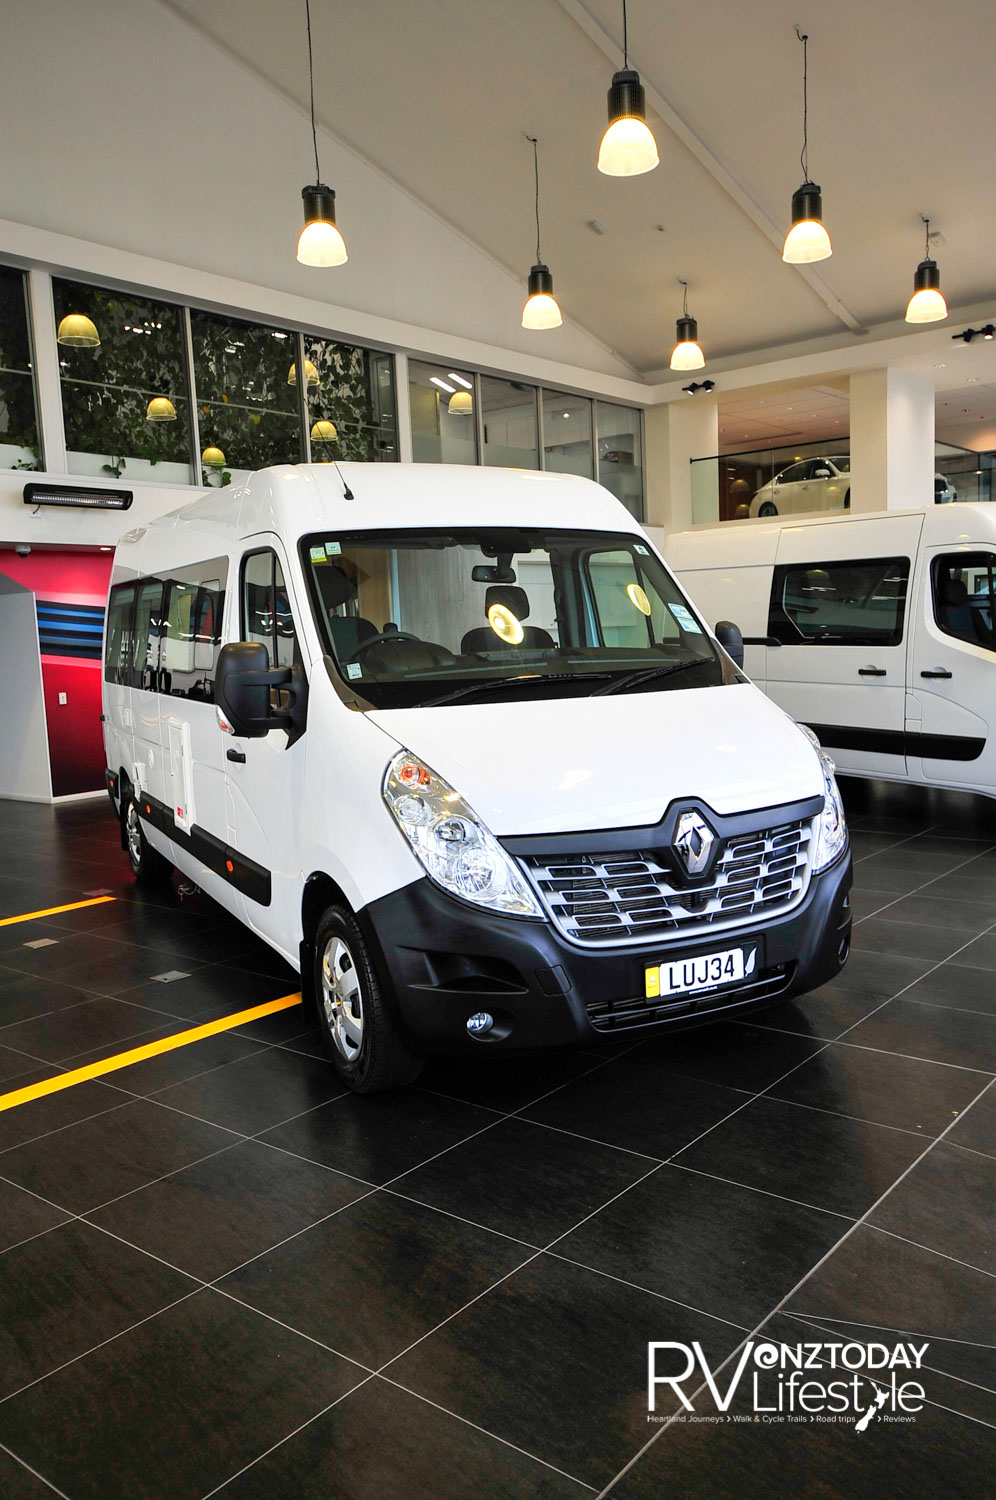 Based on the Renault Master LWB 2.3L diesel, 130kW engine with AMT transmission, packed with cruise control, air-con, Traction and Stability Control systems, remote keyless entry, ABS and EBD the list goes on